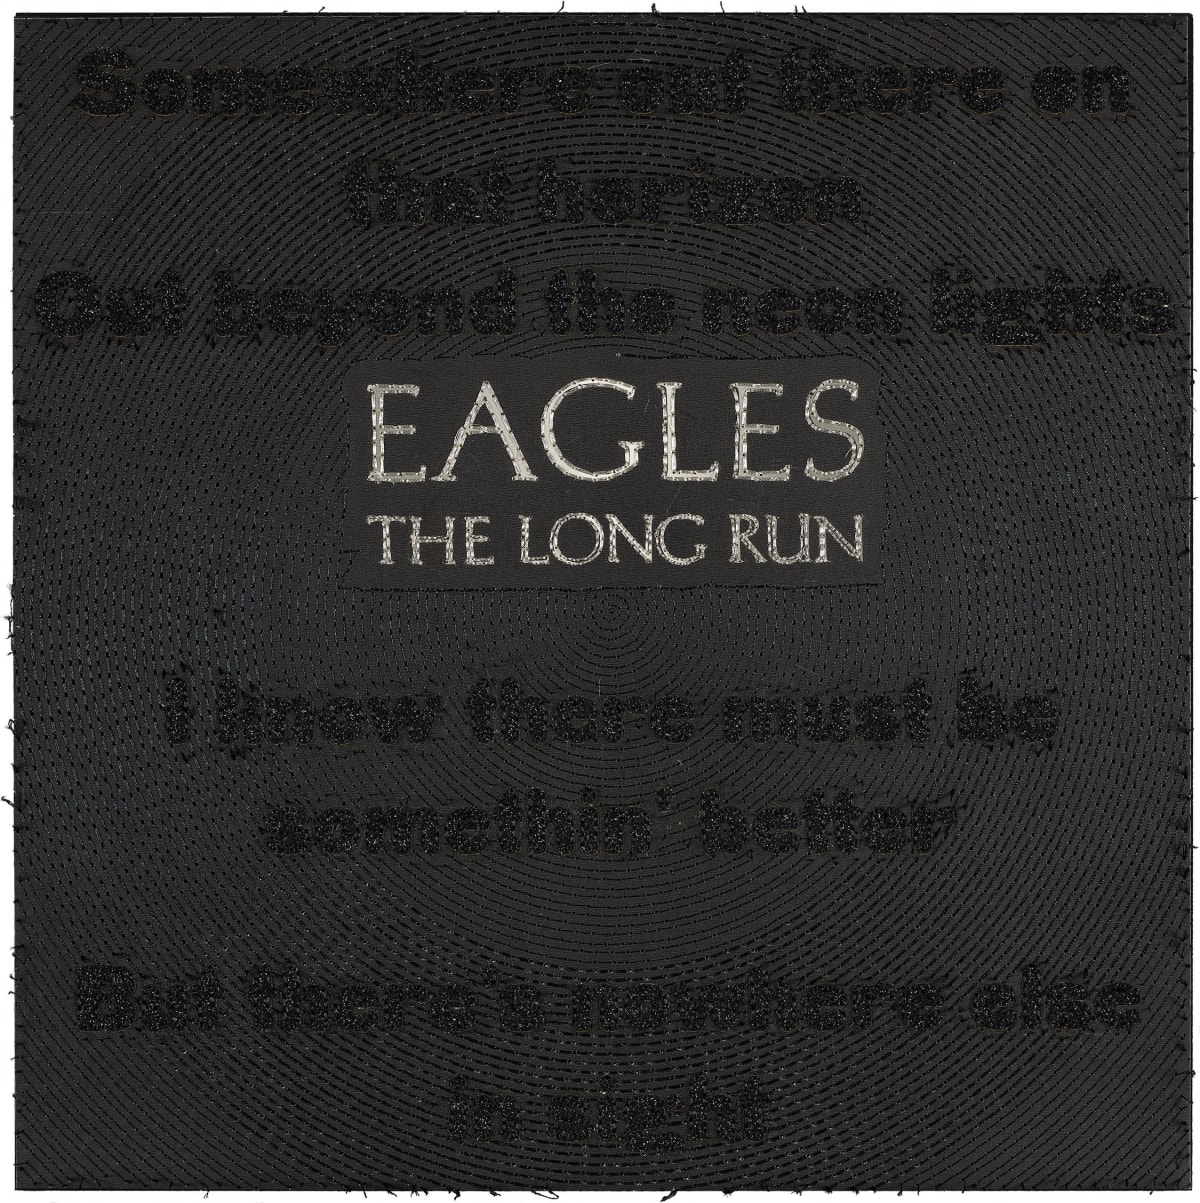 Stephen Wilson, The Long Run, Eagles , 2019